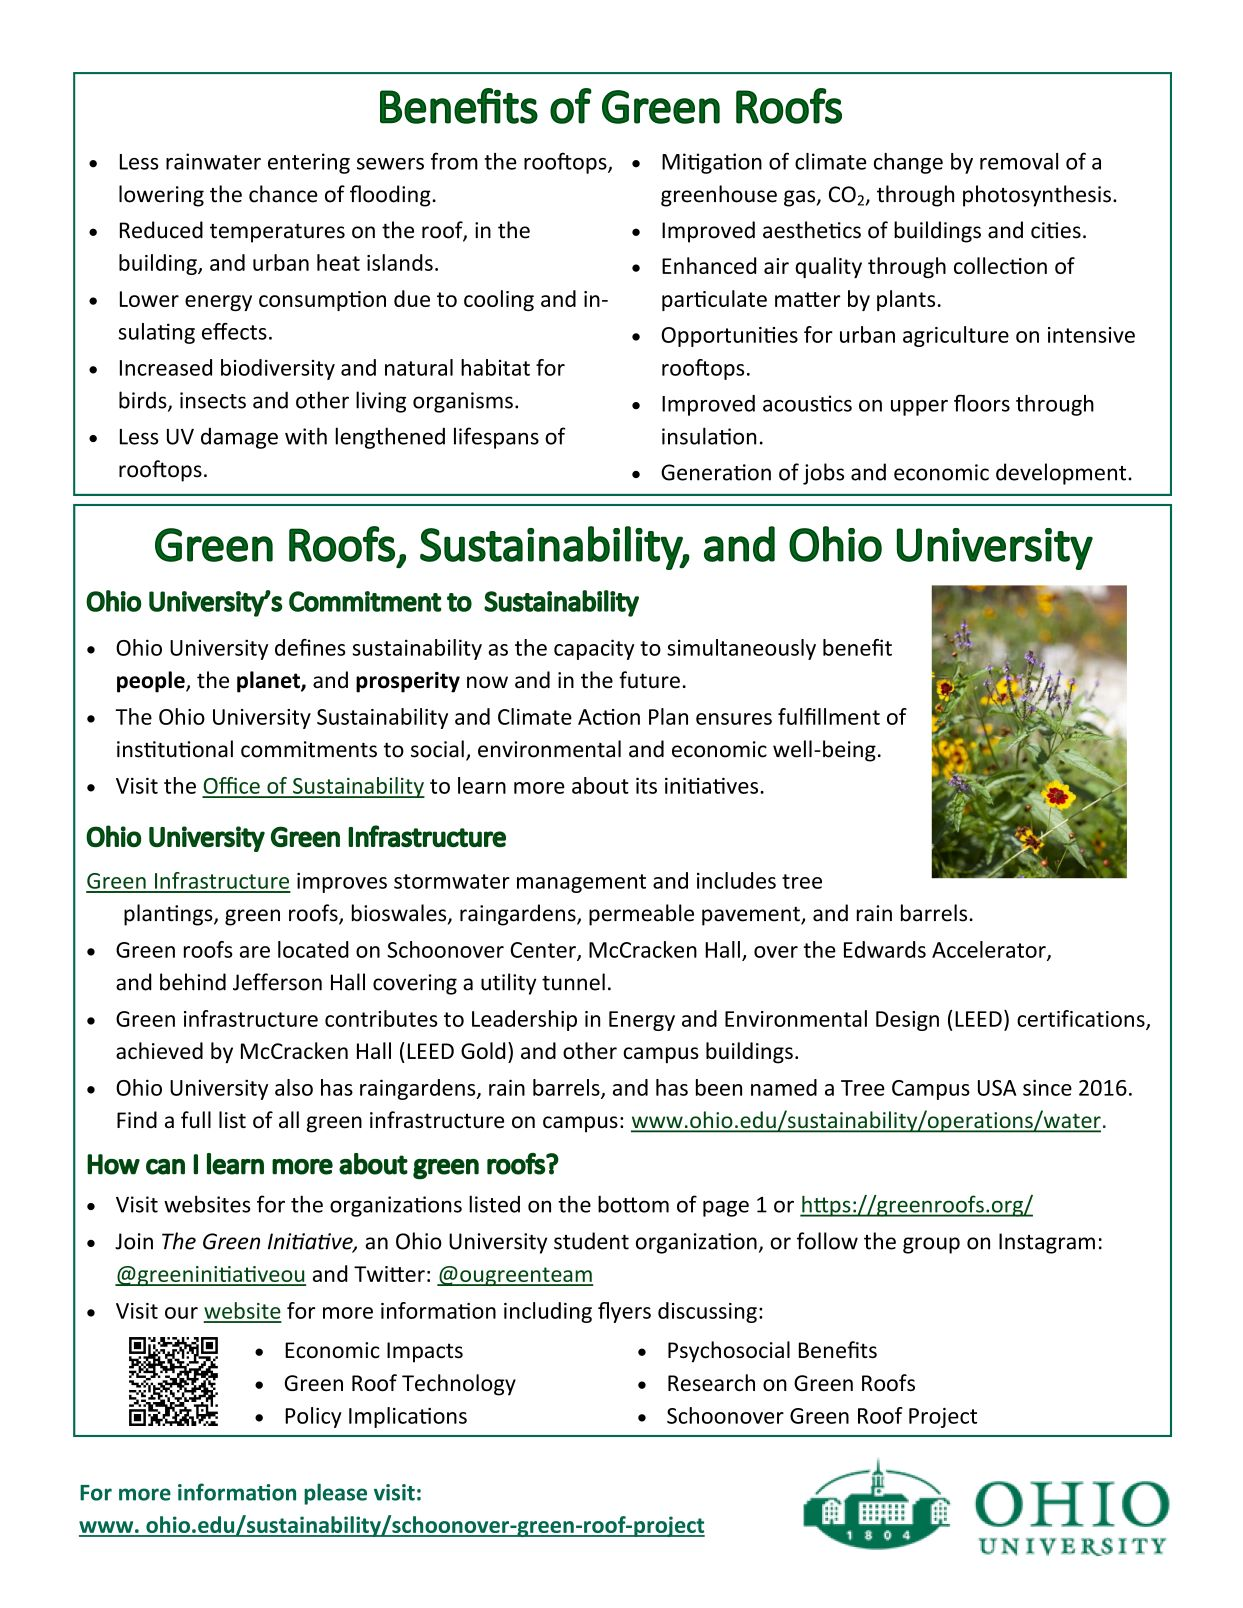 image of a flyer on green roofs p 2